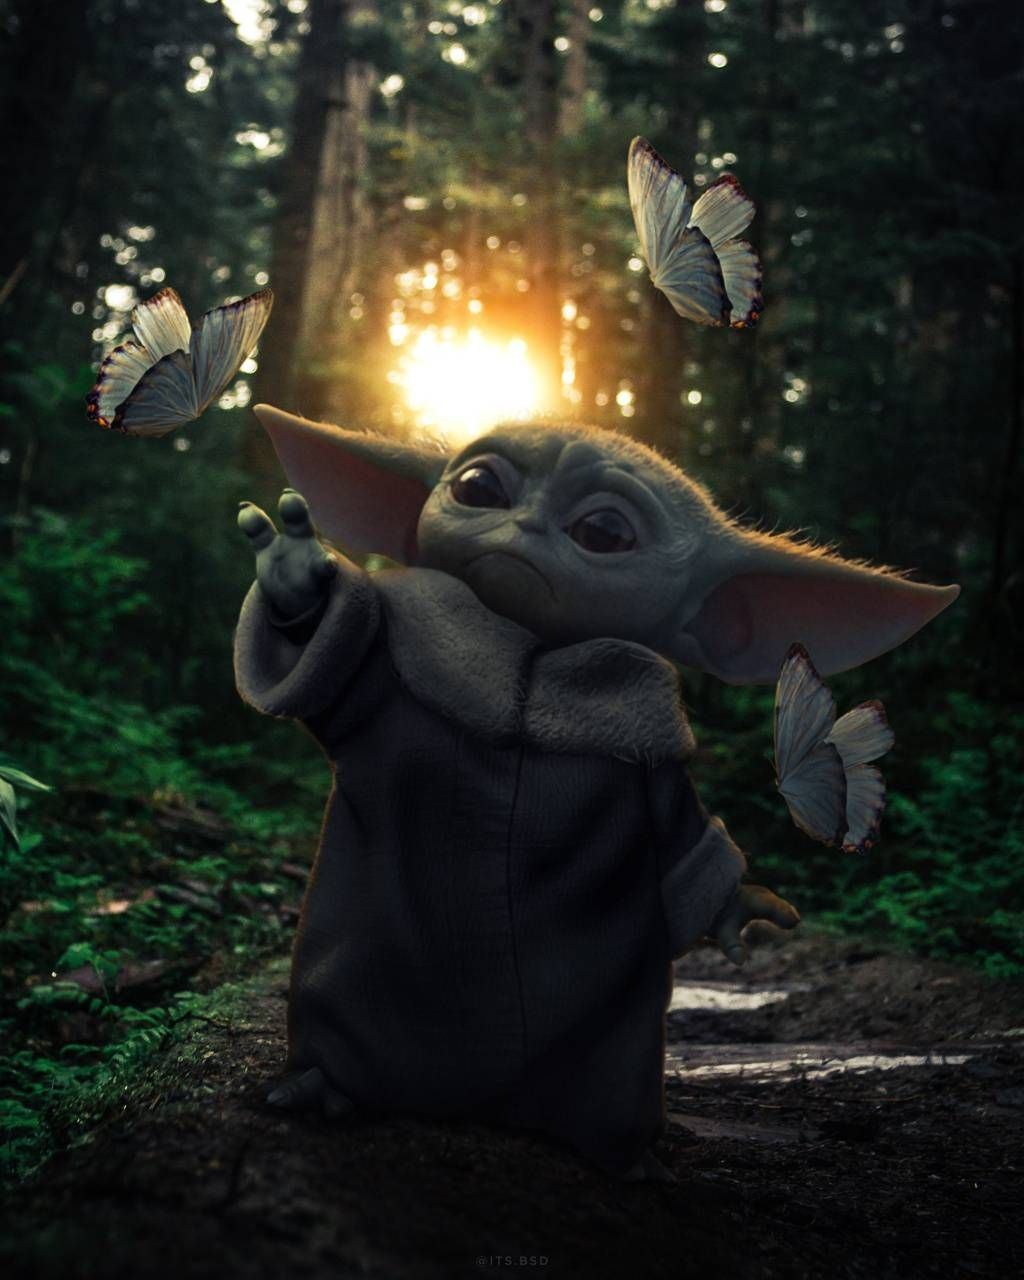 Baby Yoda Wallpaper by itsbsd - 51 - Free on ZEDGE™ in 2020